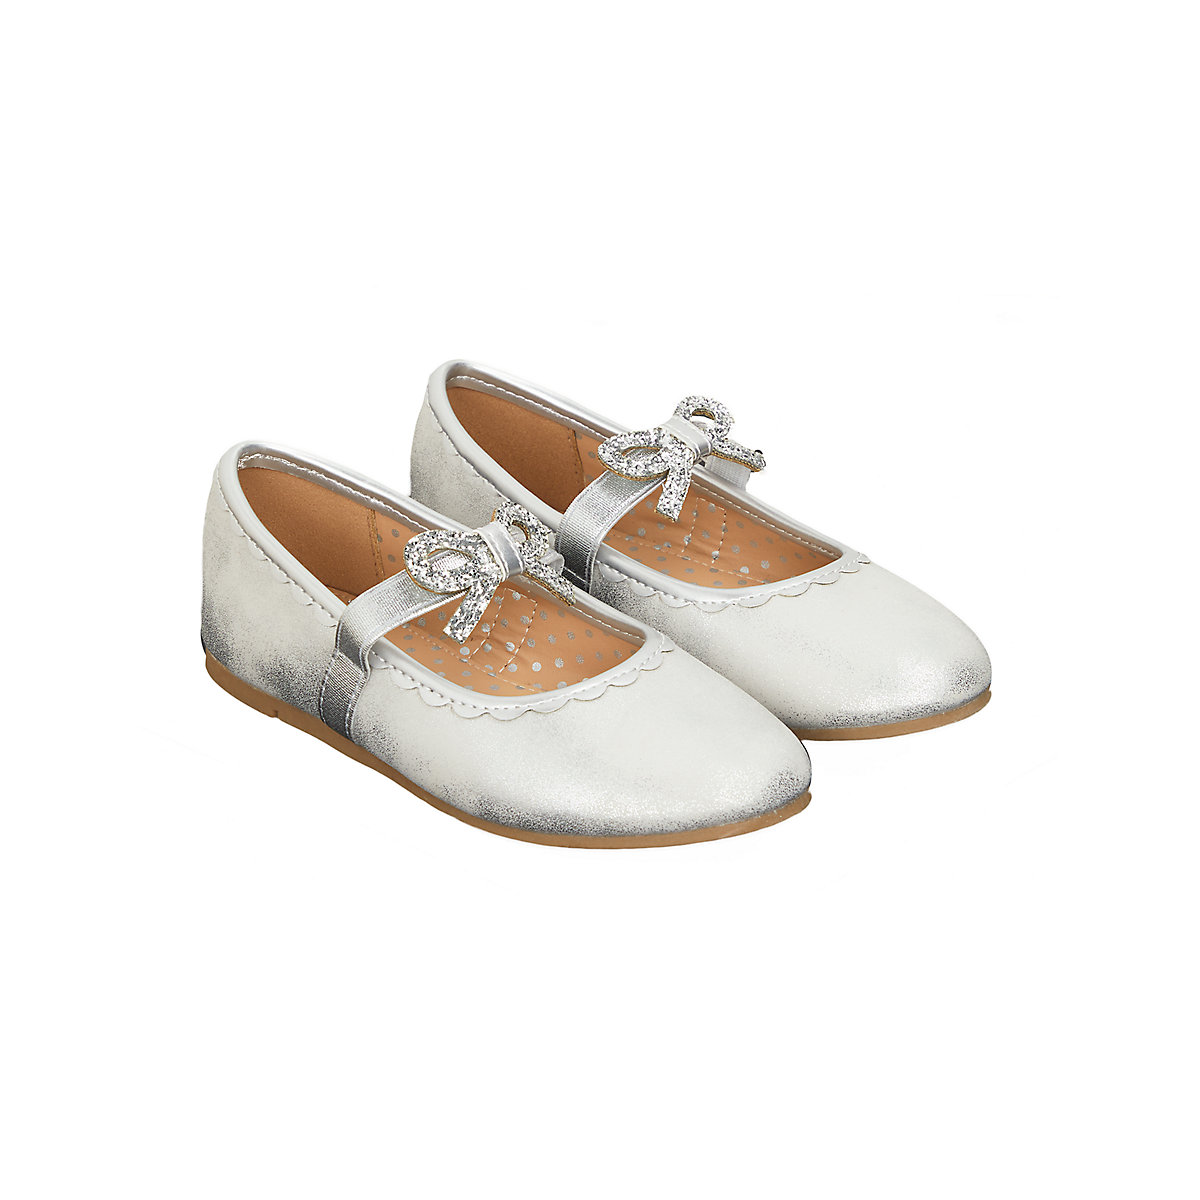 Silver Bow Ballerina Shoes